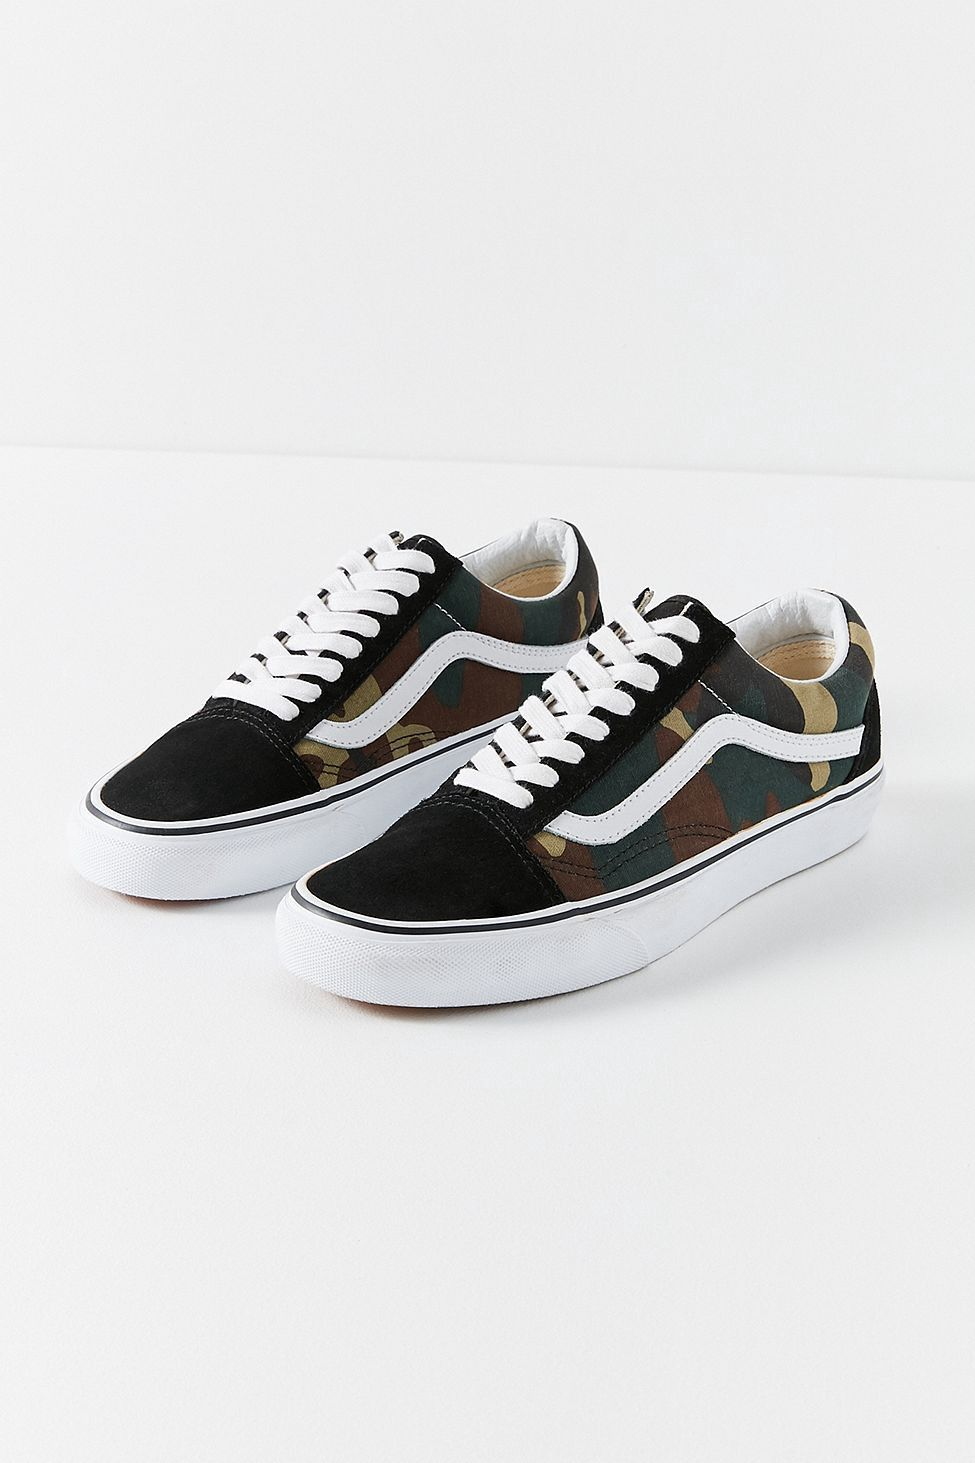 7ea9dc2a Vans Woodland Camo Old Skool Sneaker by Urban Outfitters in 2019 ...